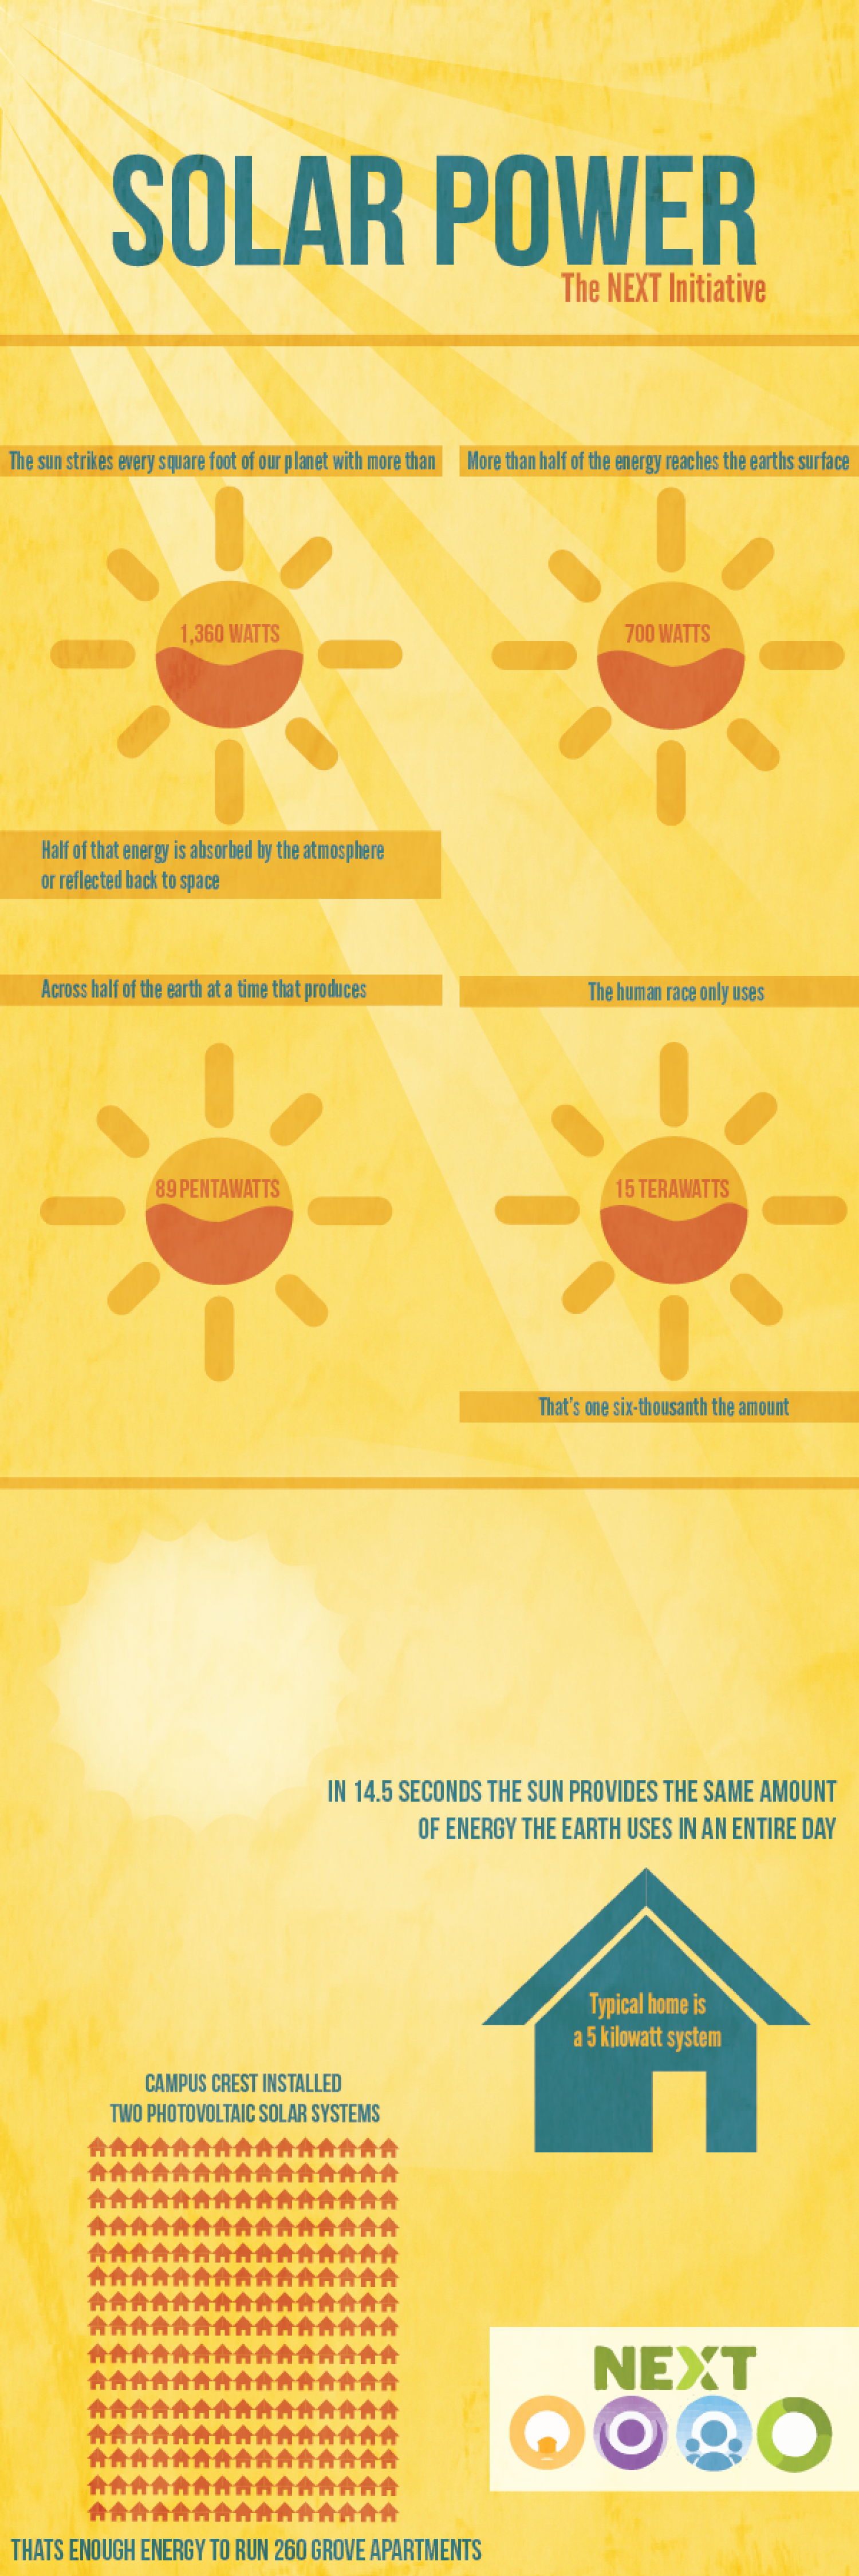 Solar Power- The NEXT Initiative Infographic